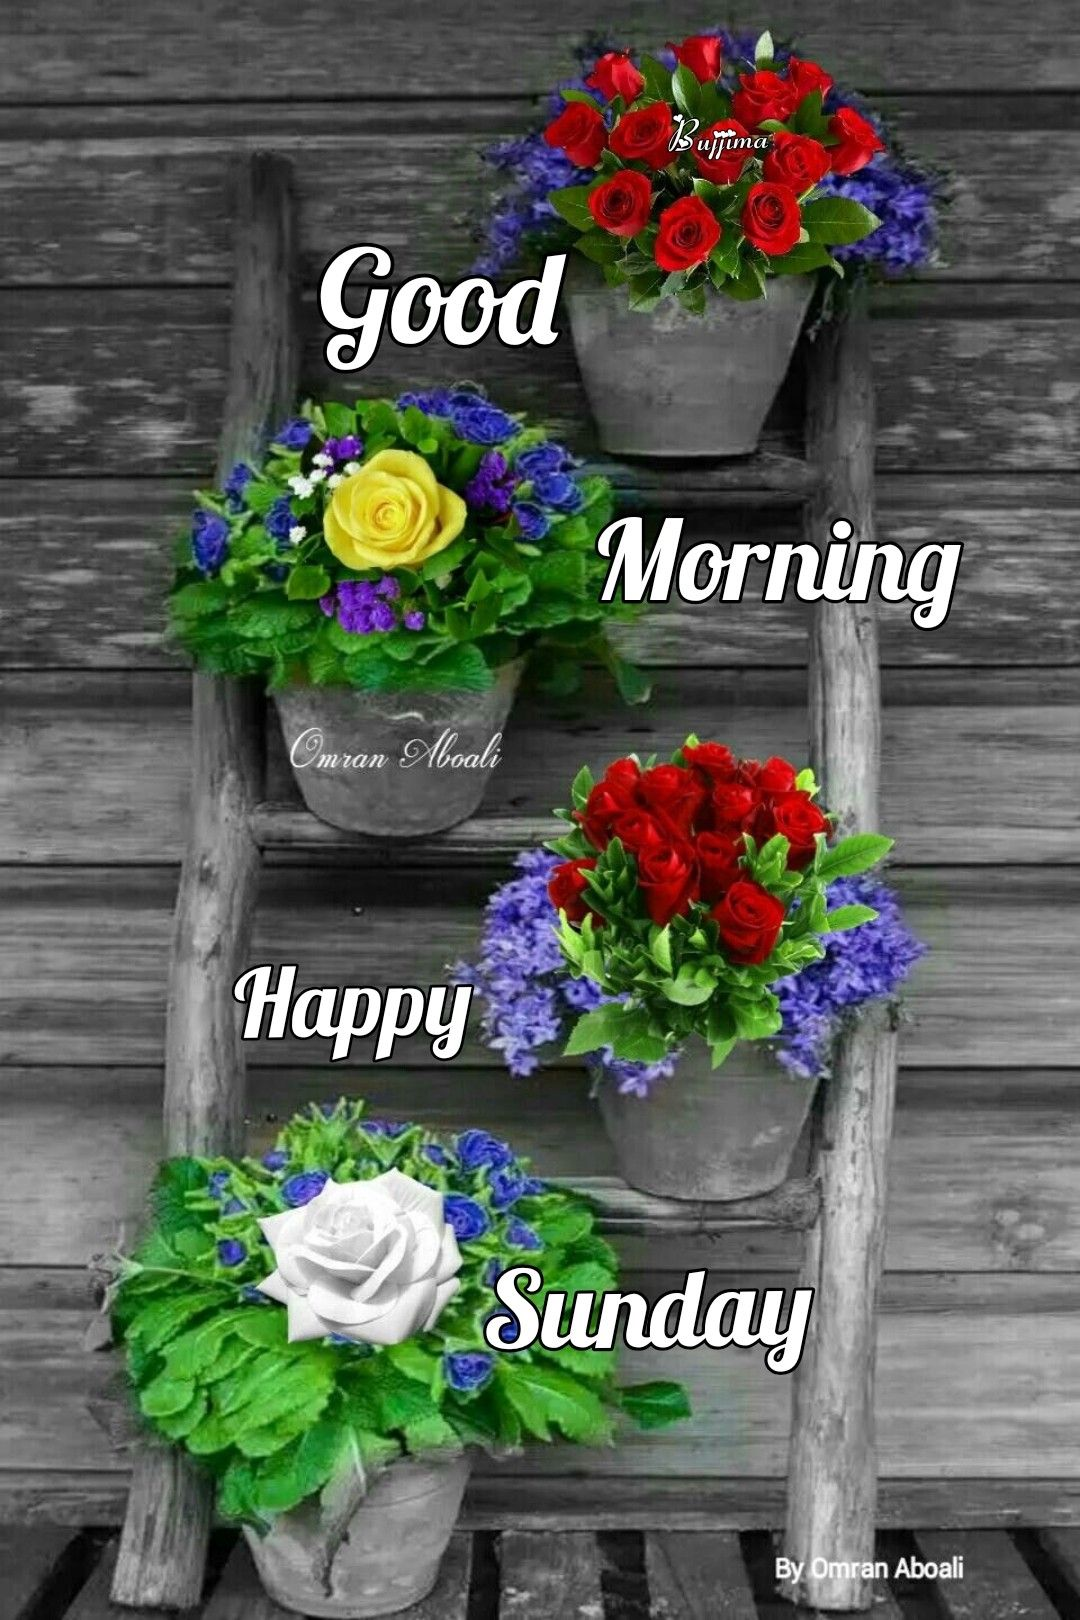 Pin By Kristel Bamps On Sunday Good Morning Happy Sunday Happy Sunday Morning Good Morning Flowers